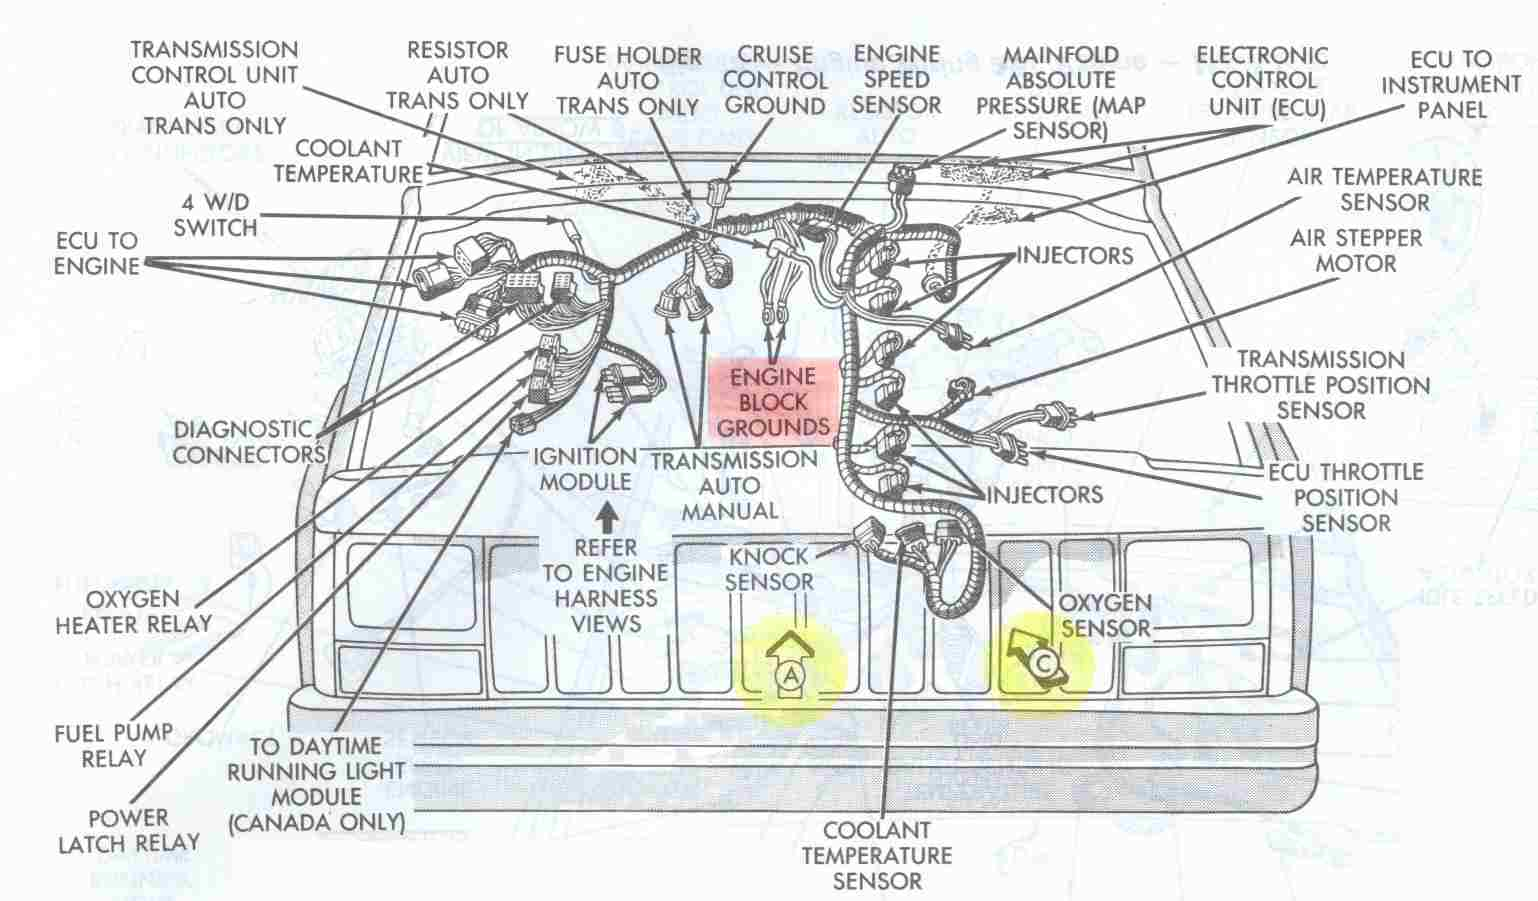 Electrical_Engine_Ground_Points_Overview jeep cherokee electrical diagnosing erratic behavior of engine 2007 Jeep Wrangler Wiring Diagram at bakdesigns.co